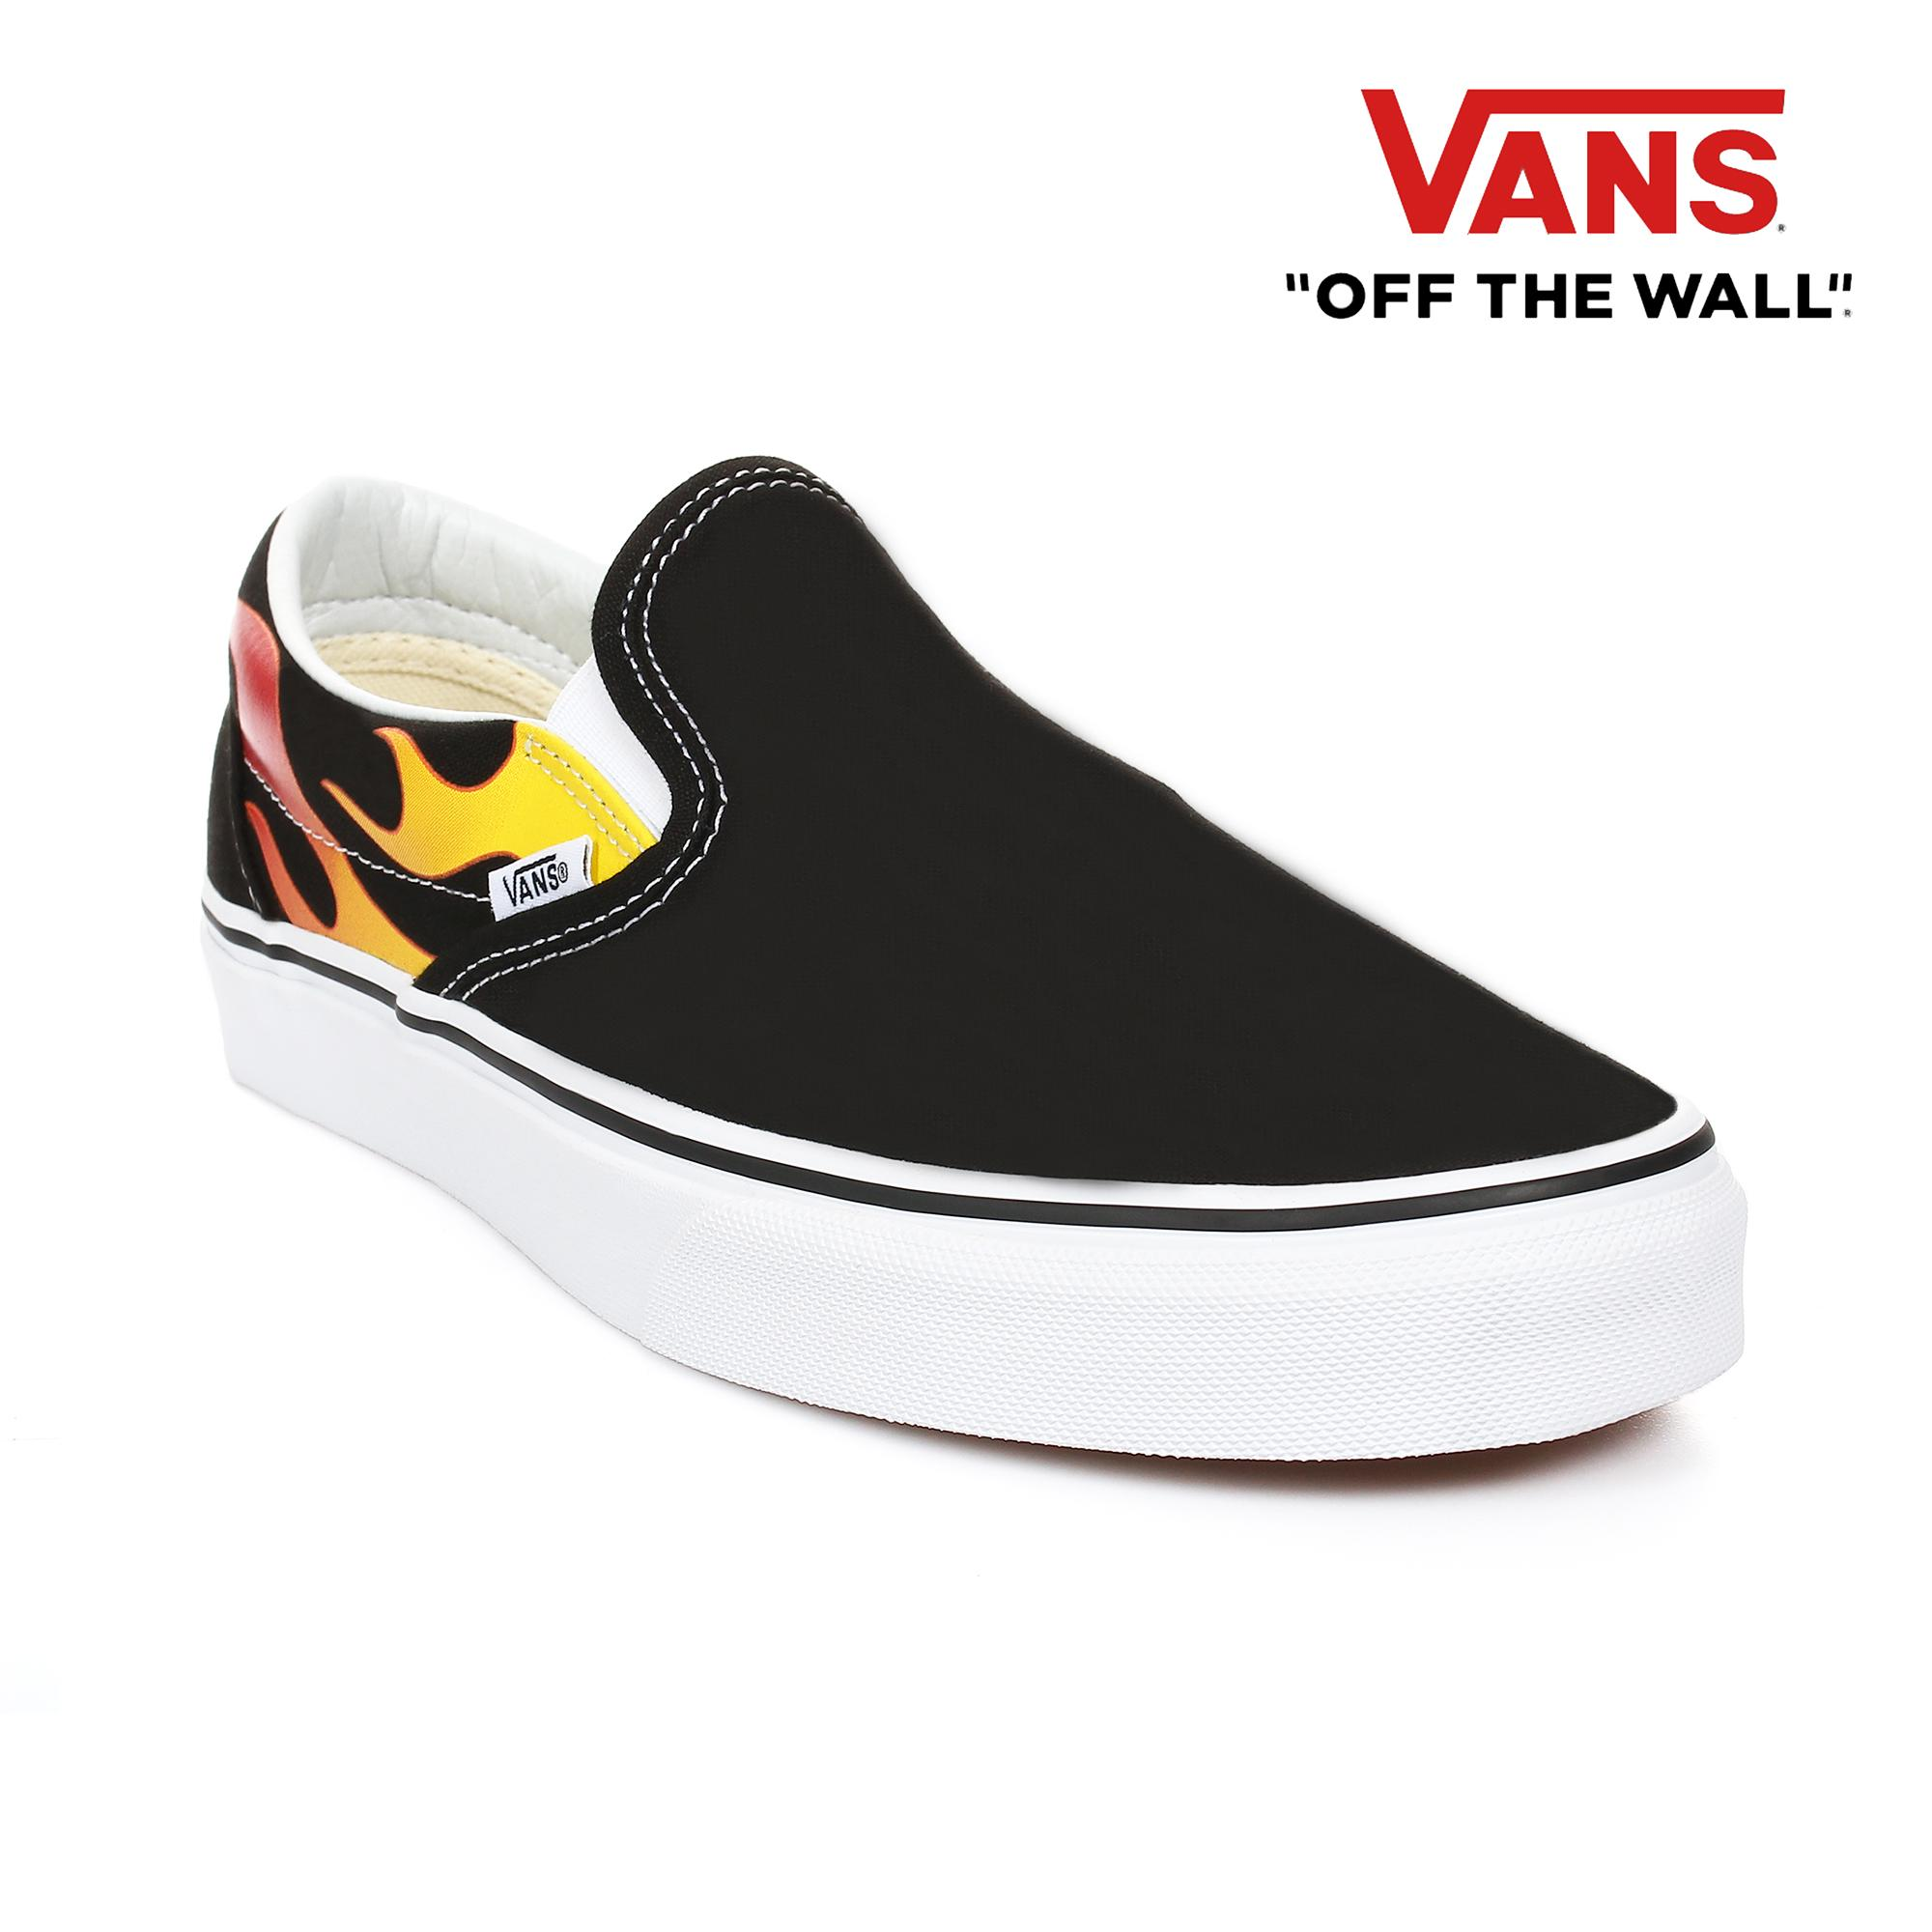 da279e5c62a33d Vans Shoes for Men Philippines - Vans Men s Shoes for sale - prices ...